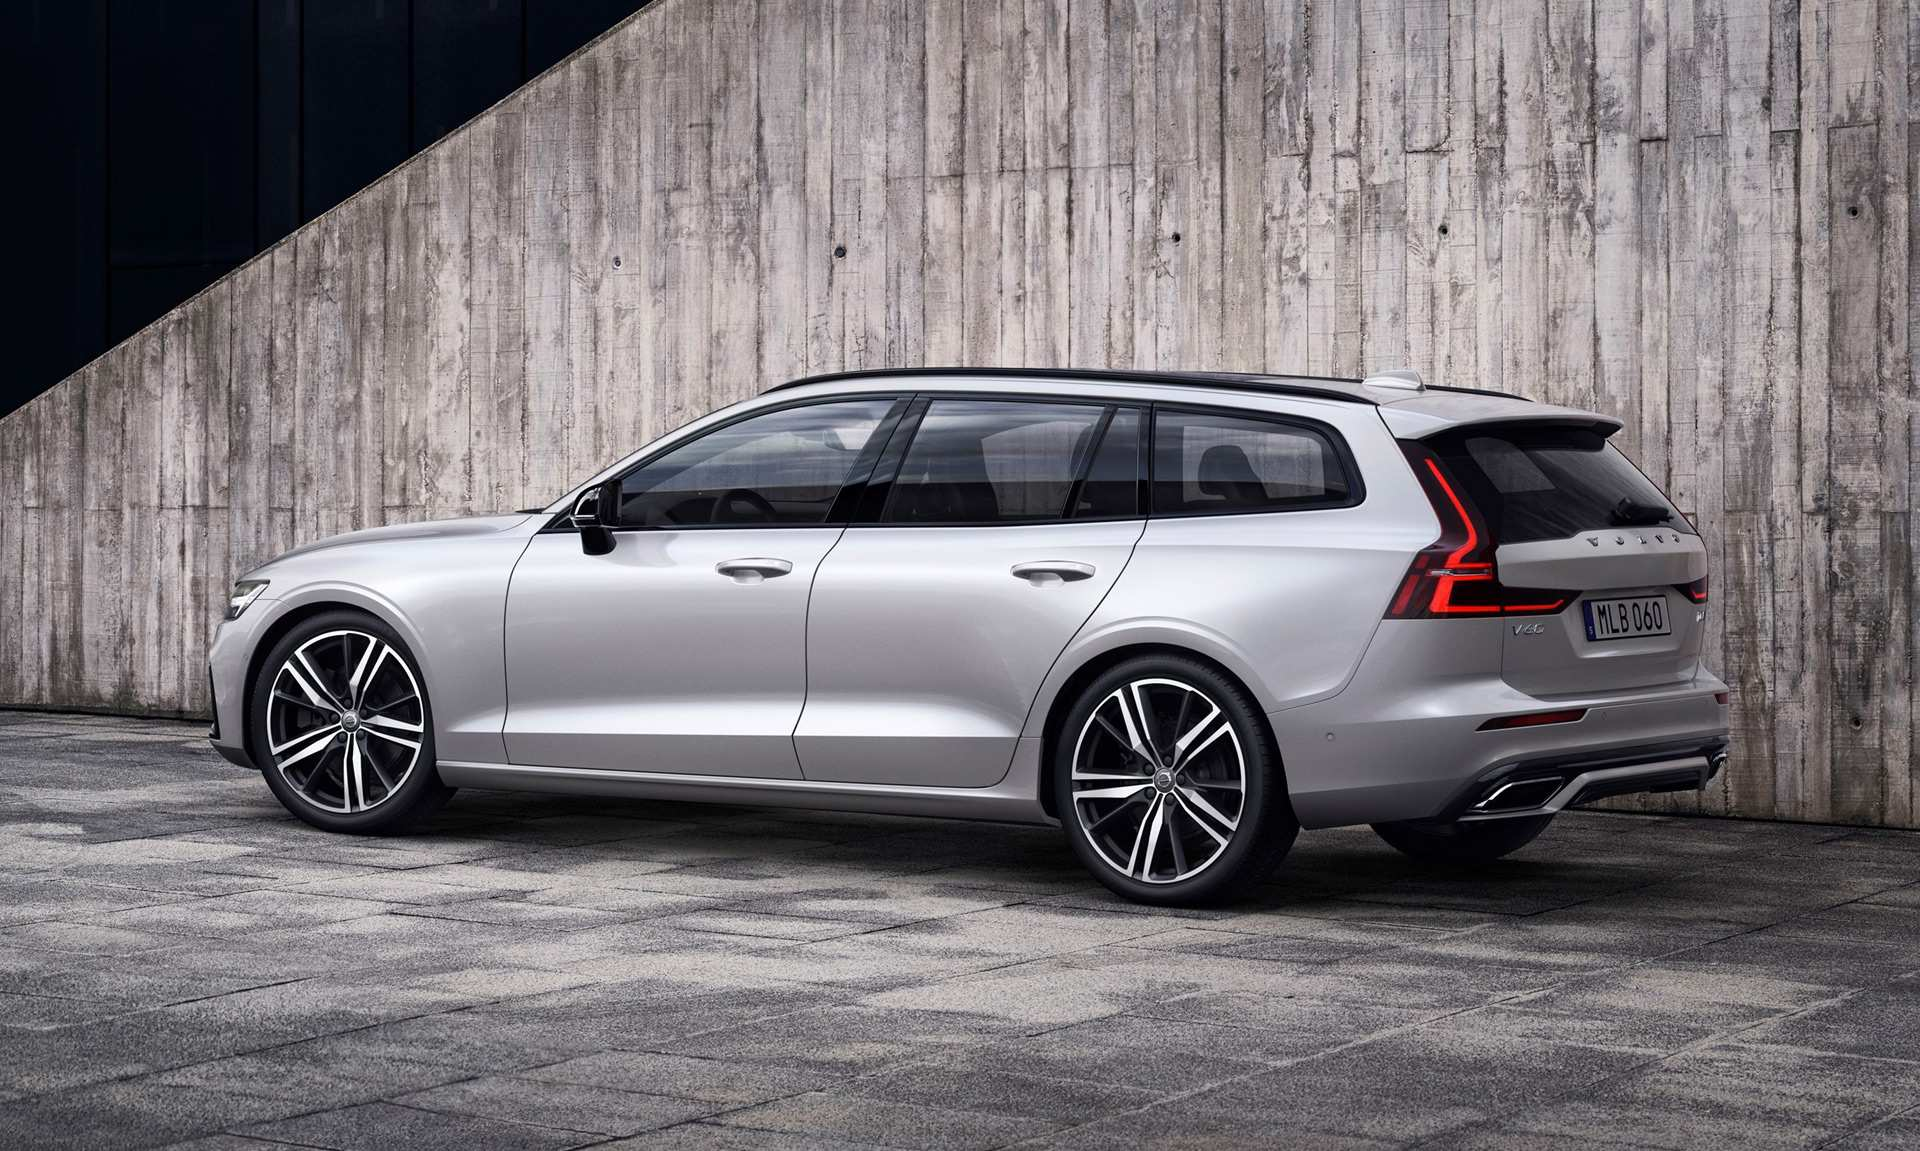 65 All New 2019 Volvo V60 Price Photos